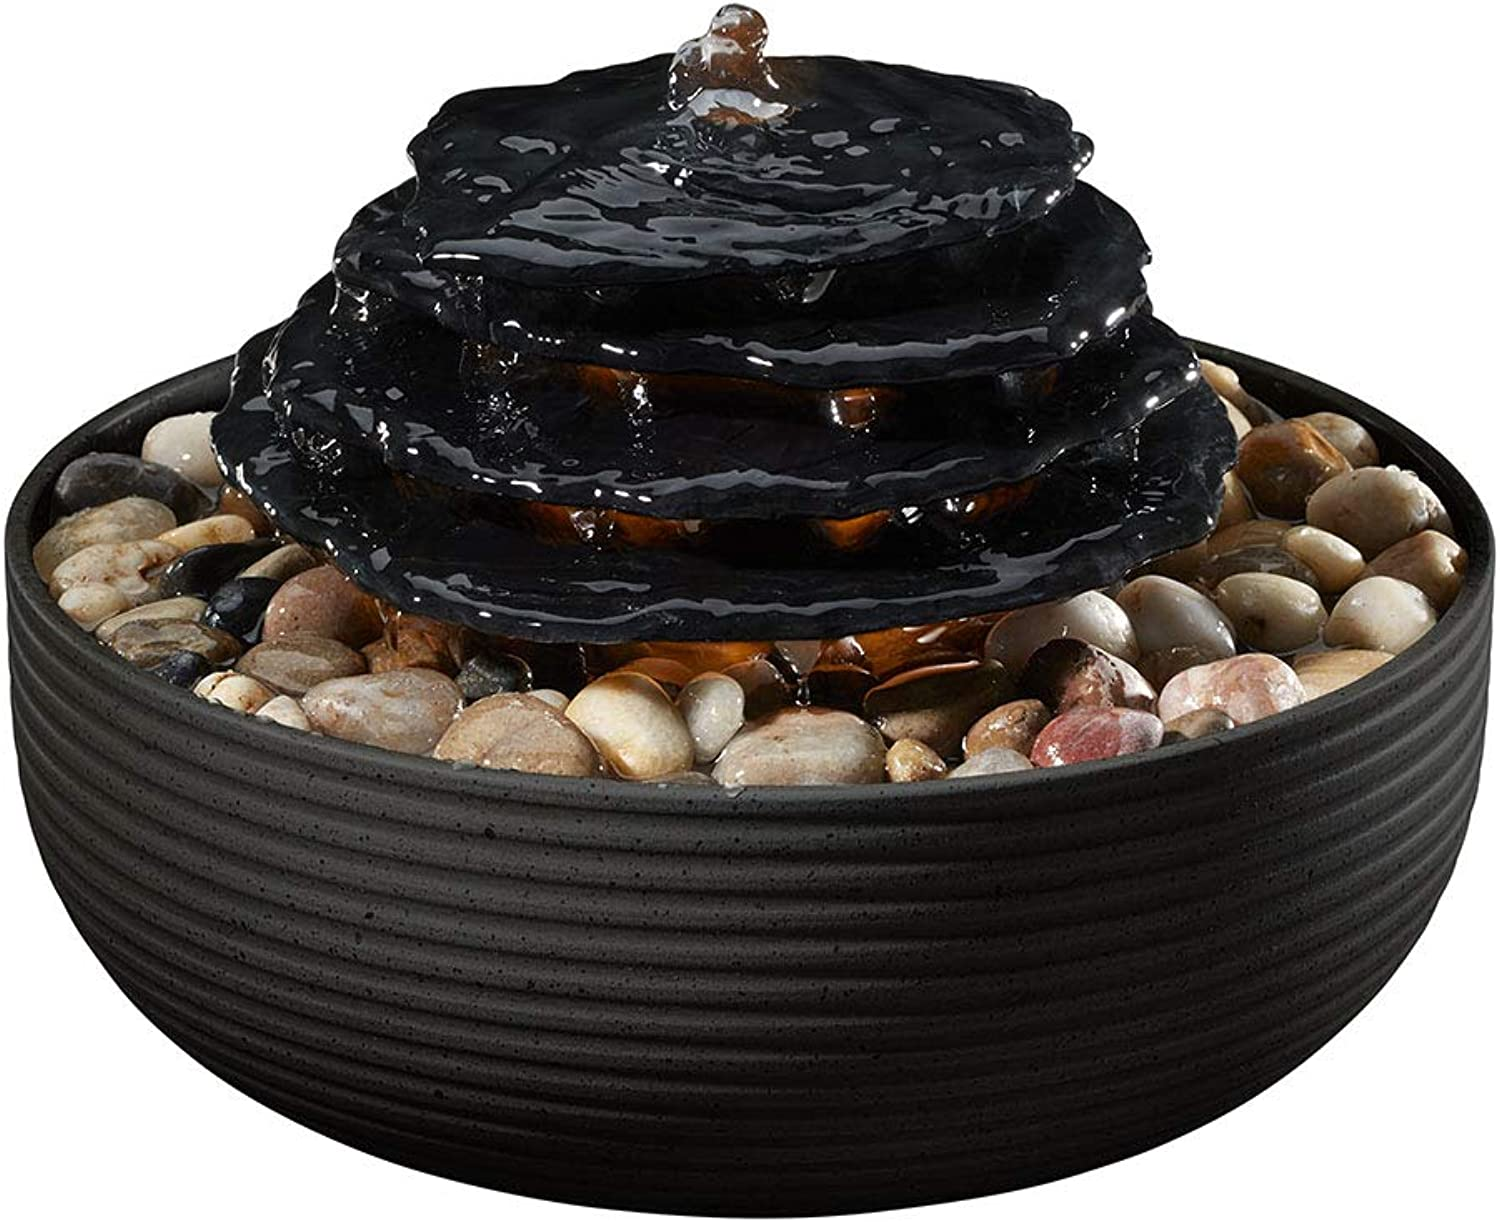 Homedics Purity Relaxation Tabletop Fountain Black